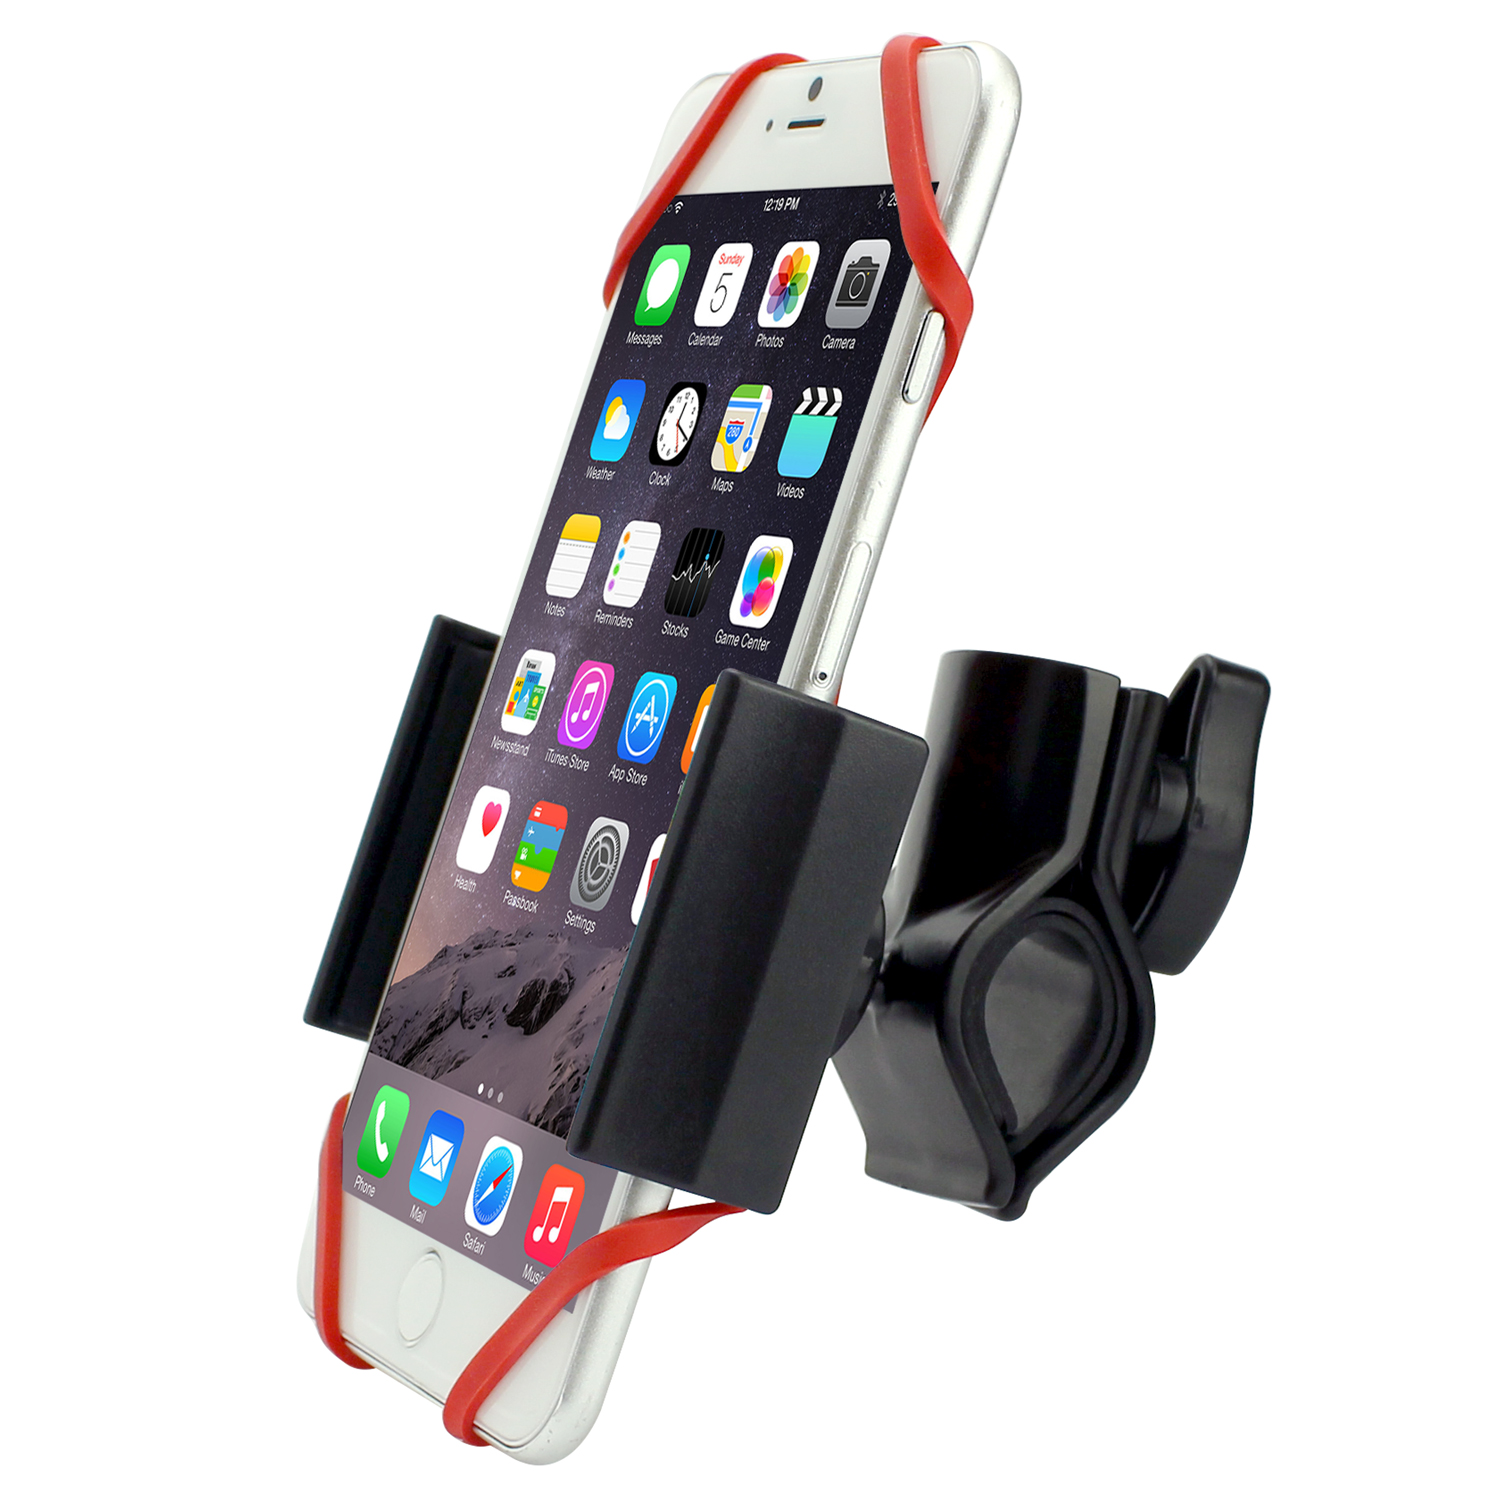 Nokia Lumia Icon Bike Phone Mount Adjustable Black